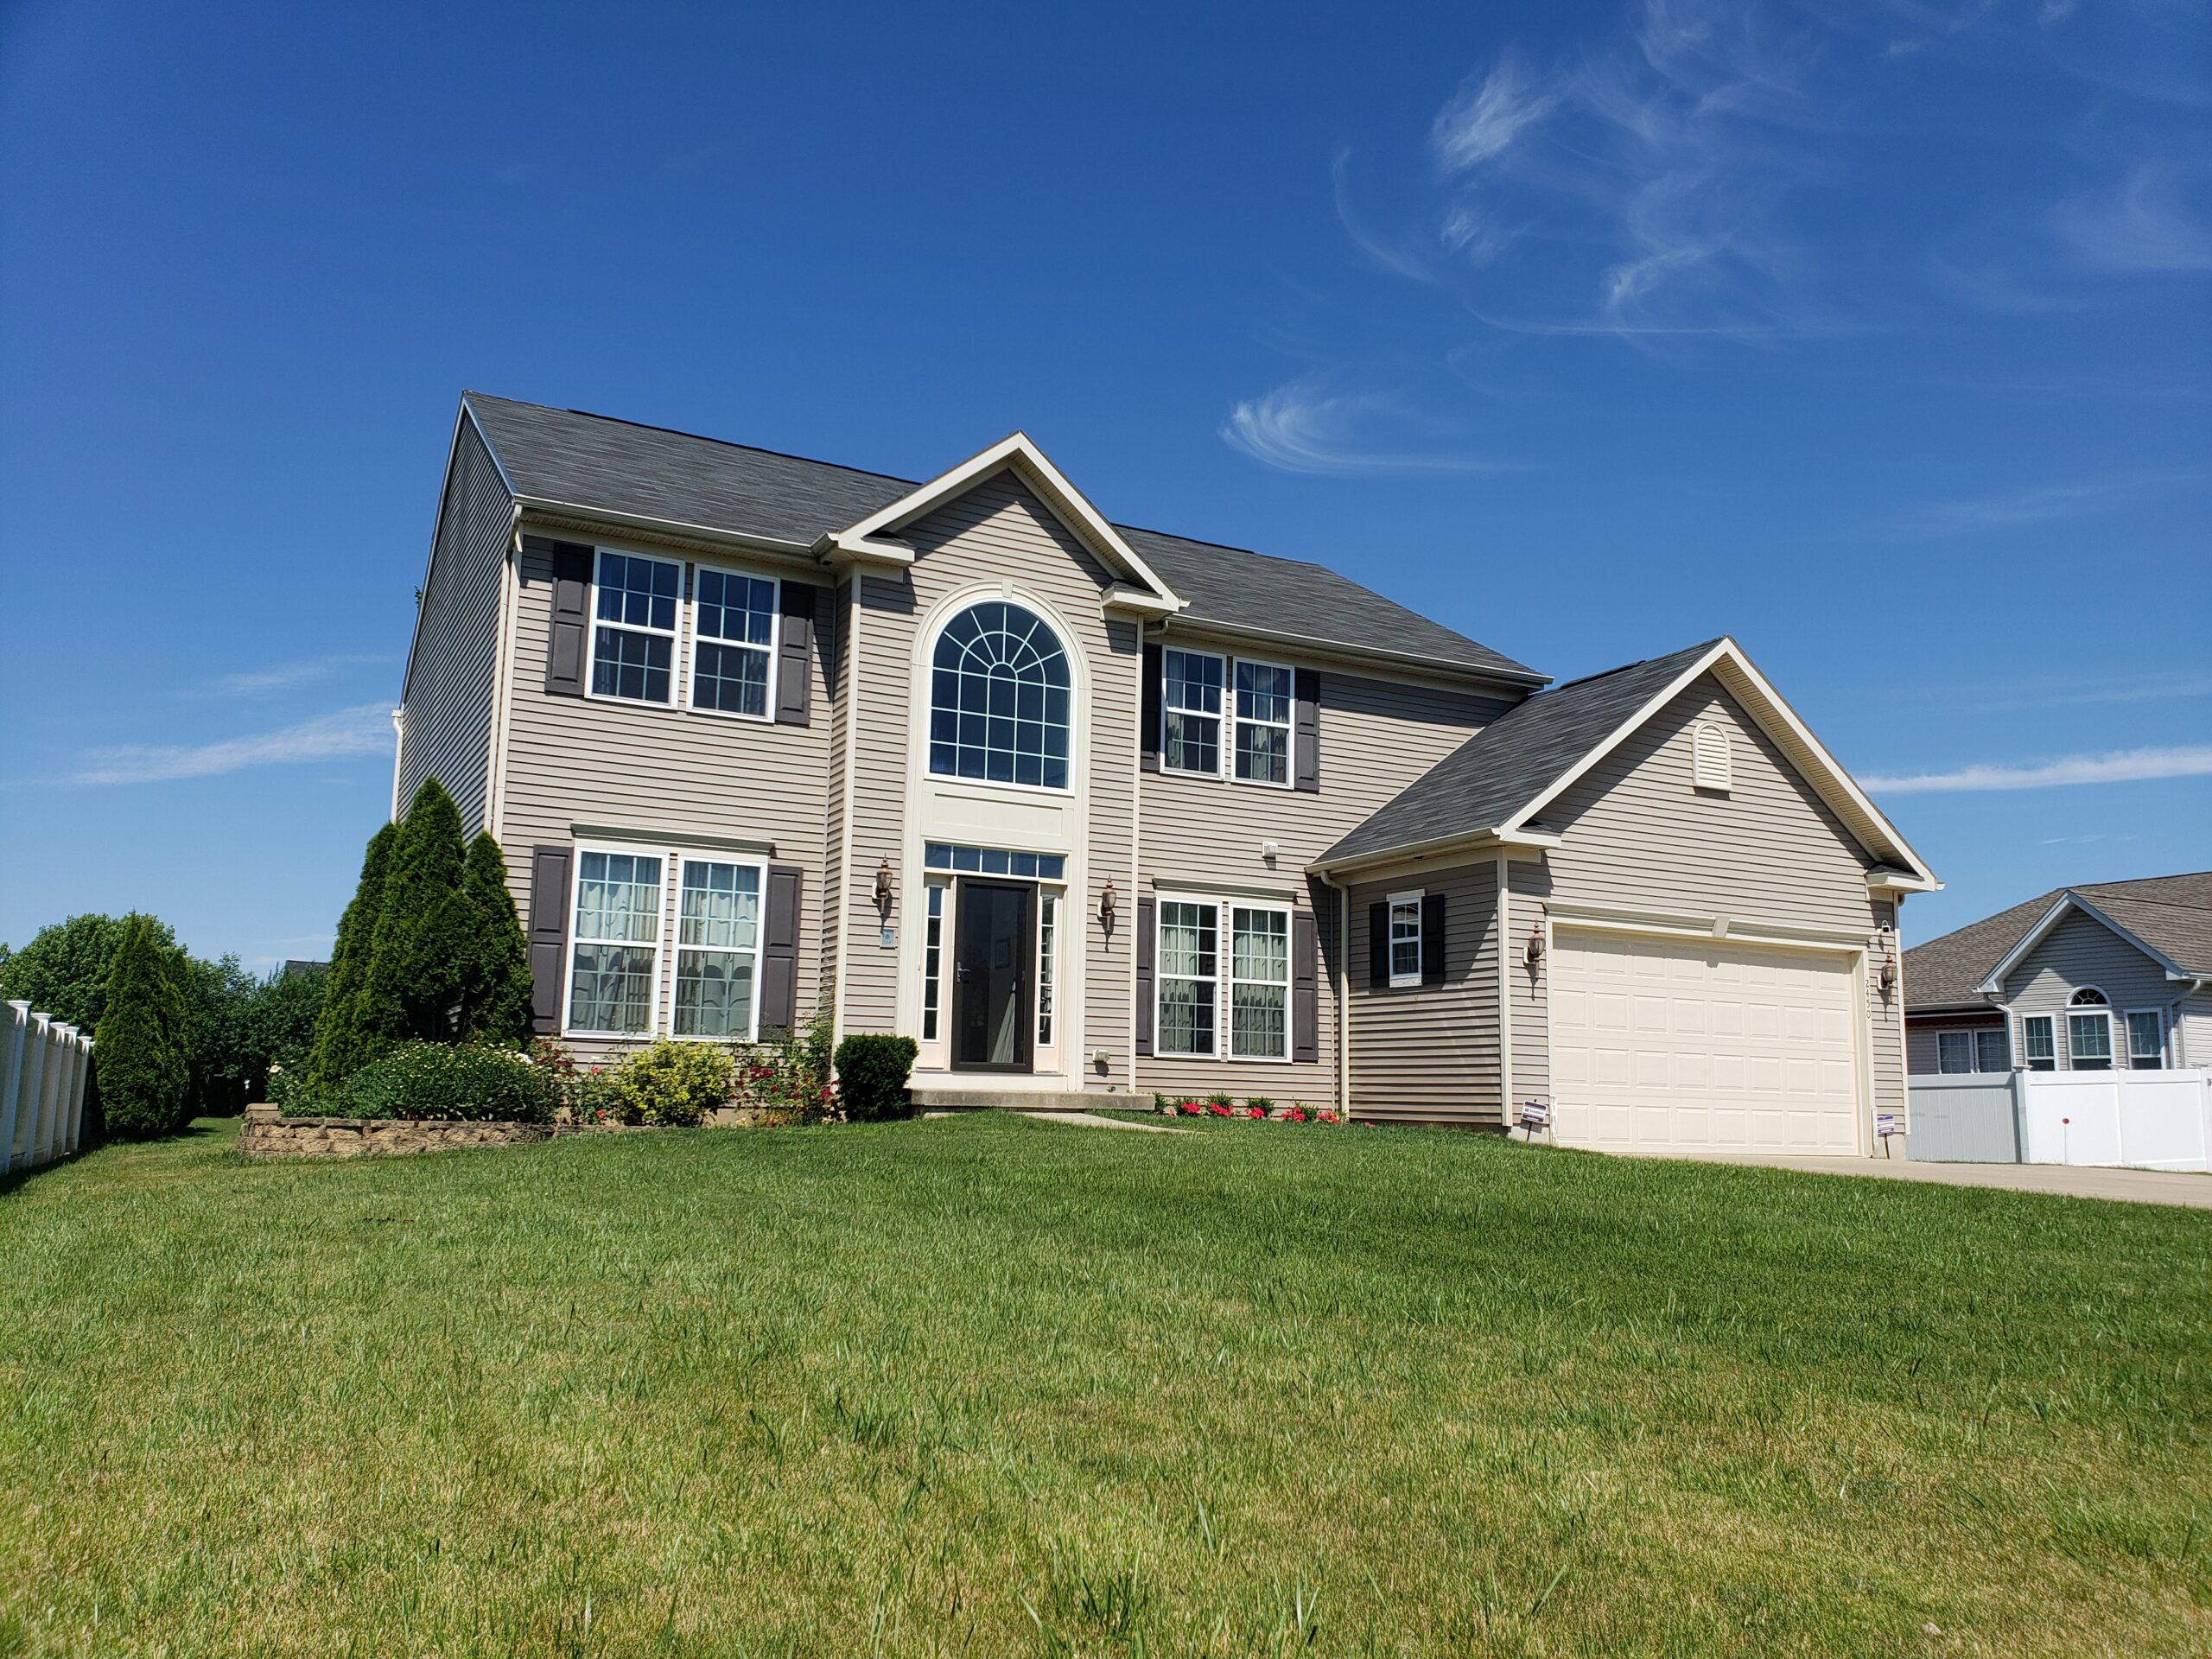 FOR SALE: 4 bed / 3.5 bath single family home in Wheatfield